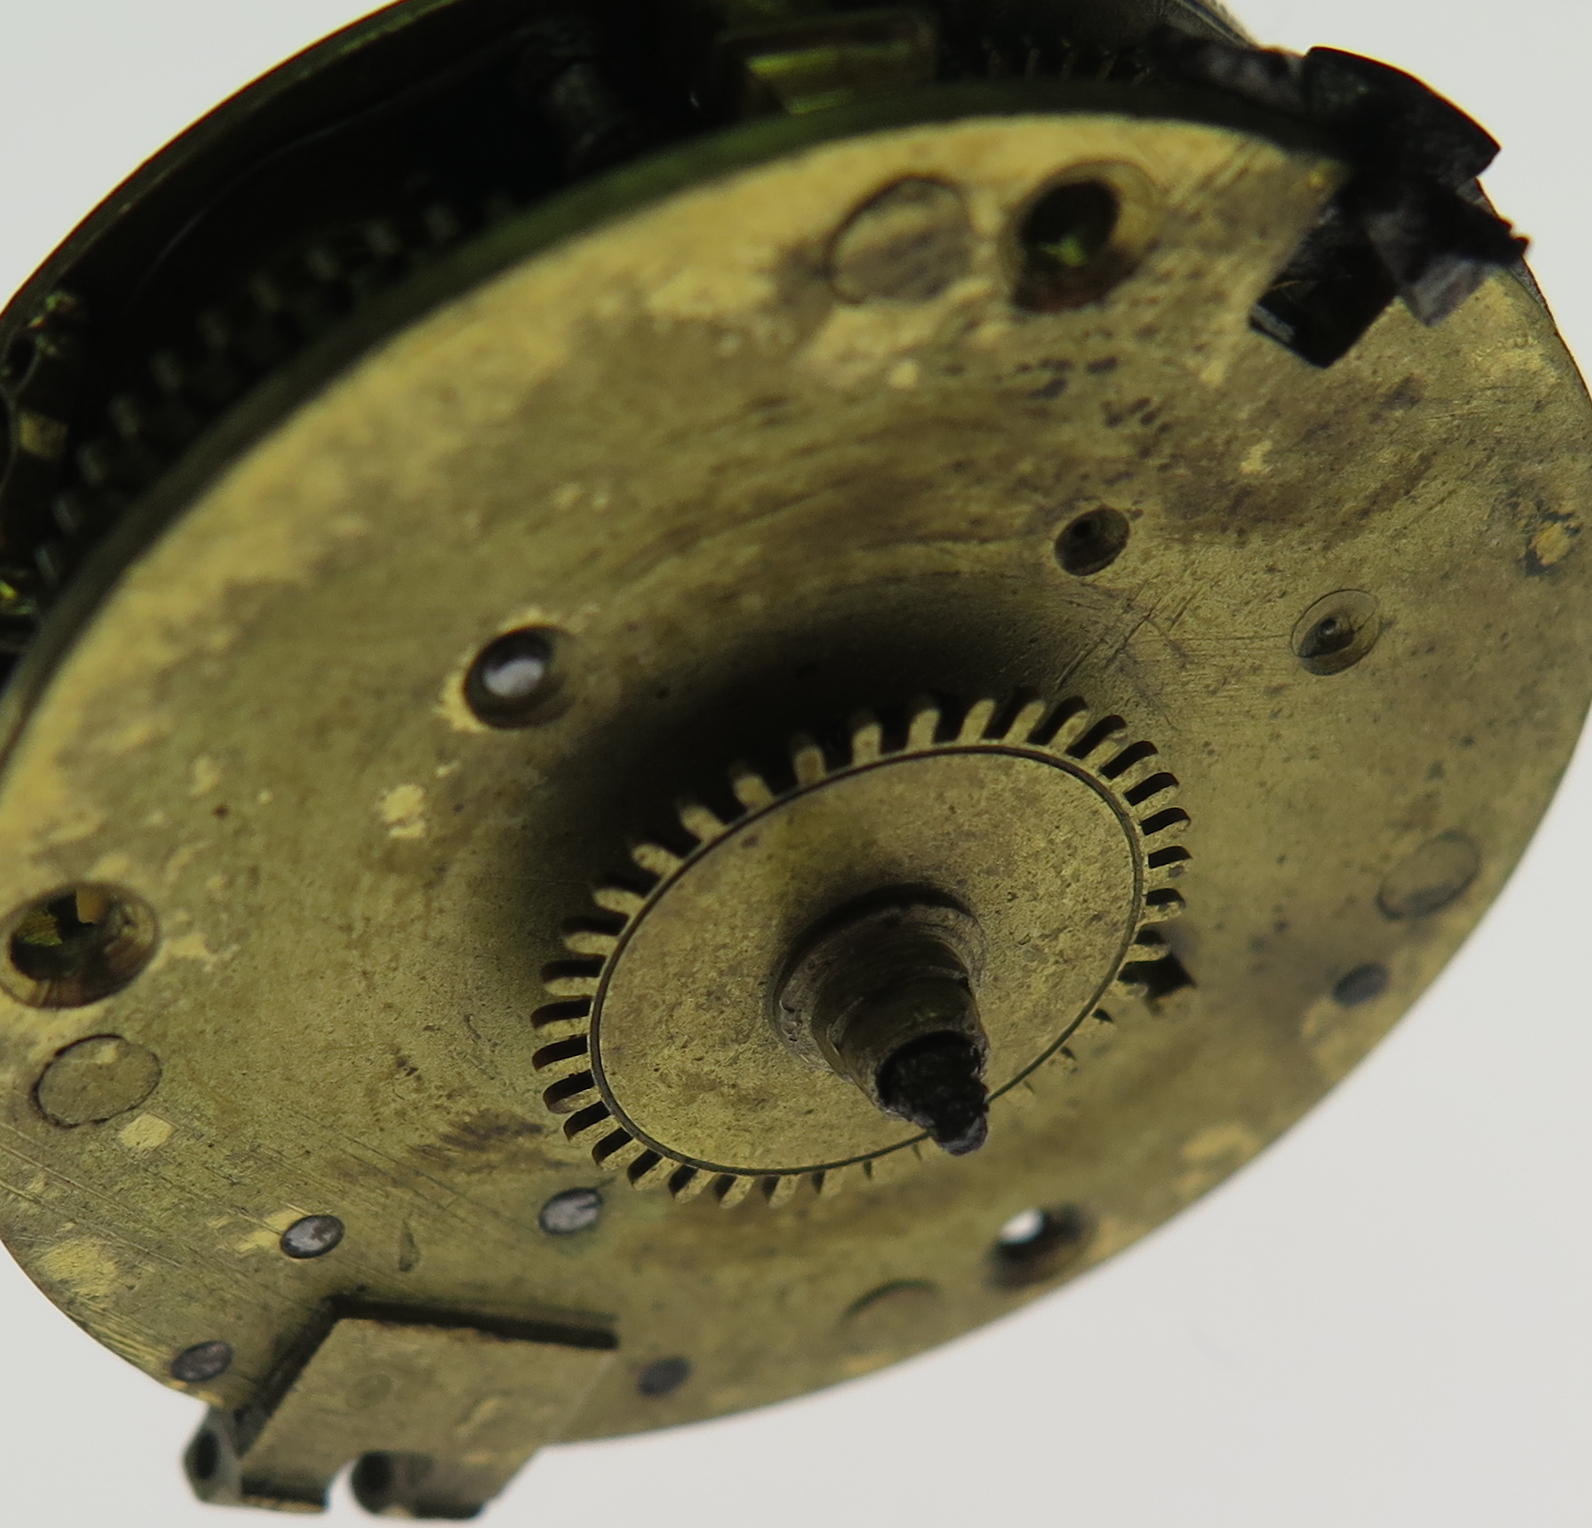 Dial side of the movement